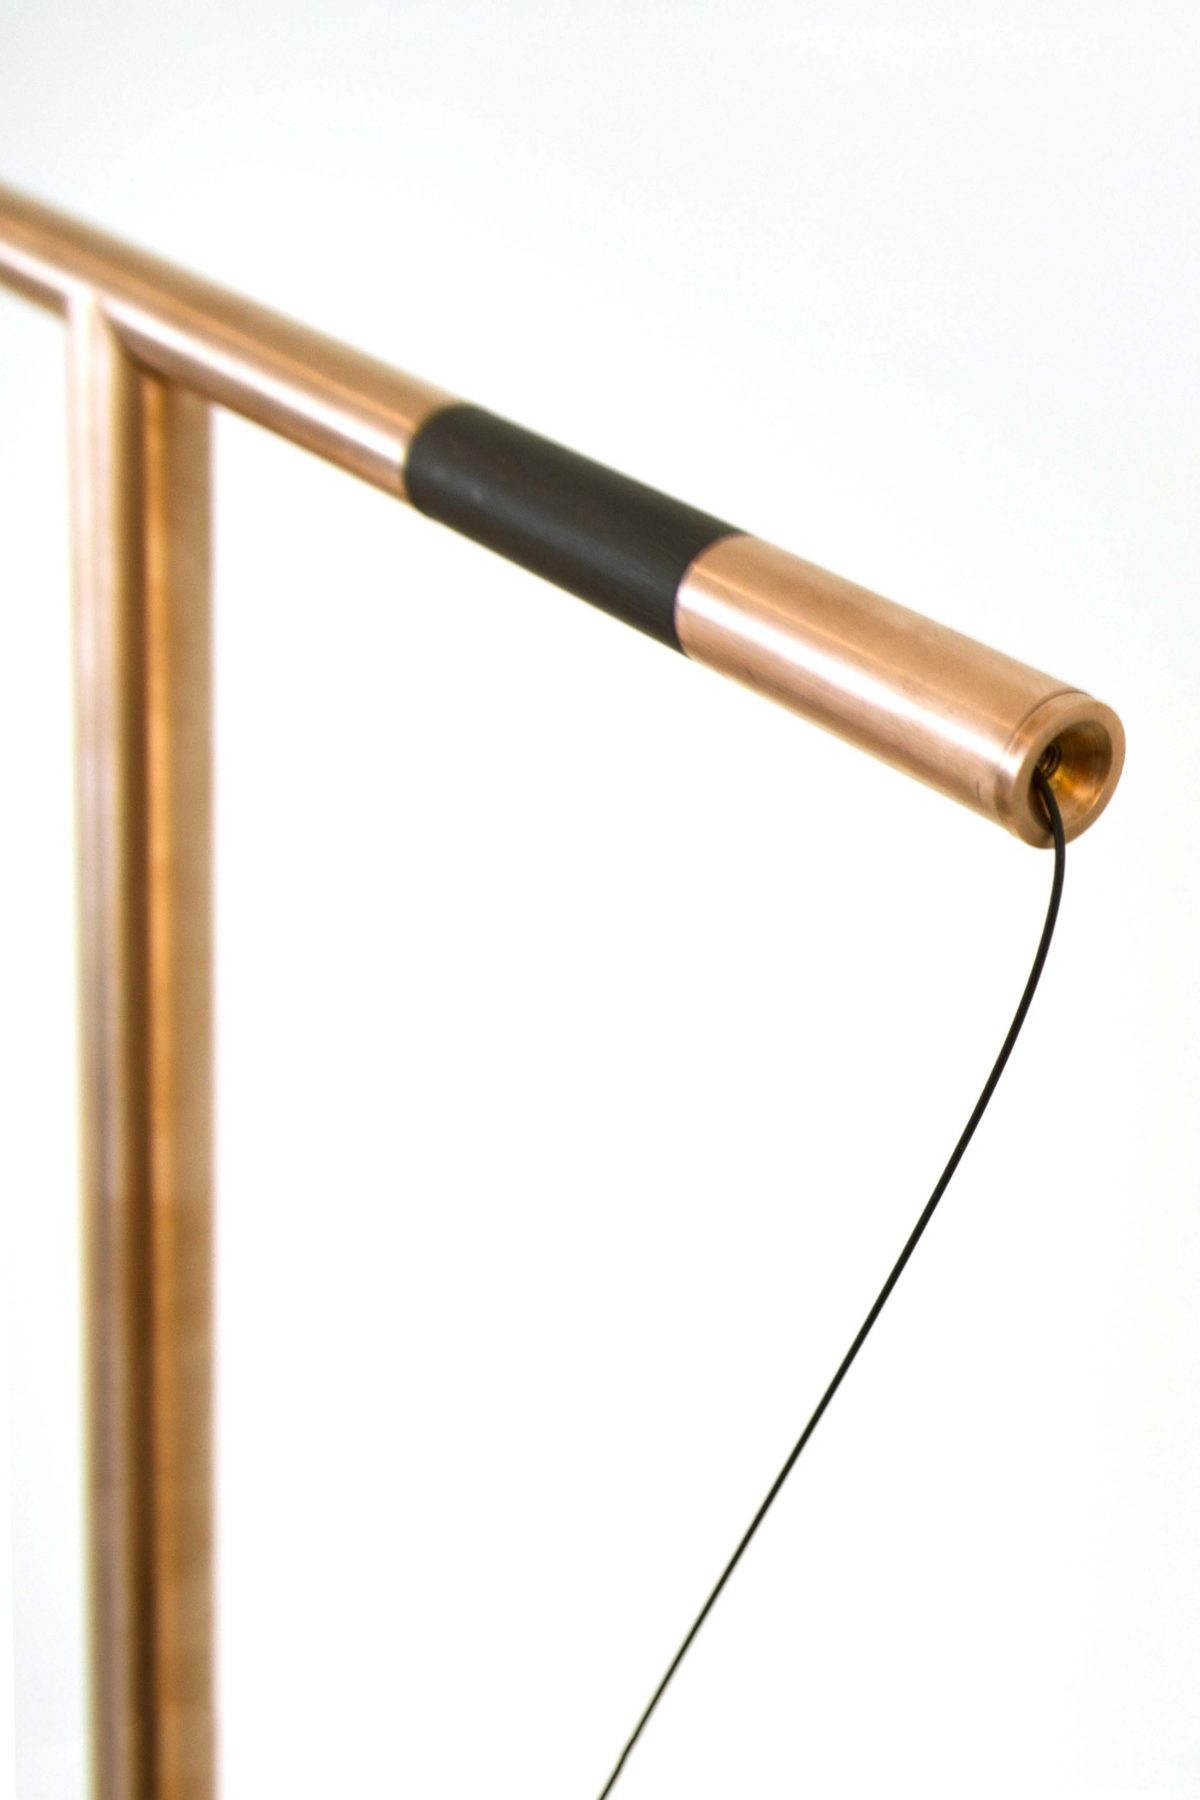 Studio Mieke Meijer Balance tablelamp copper